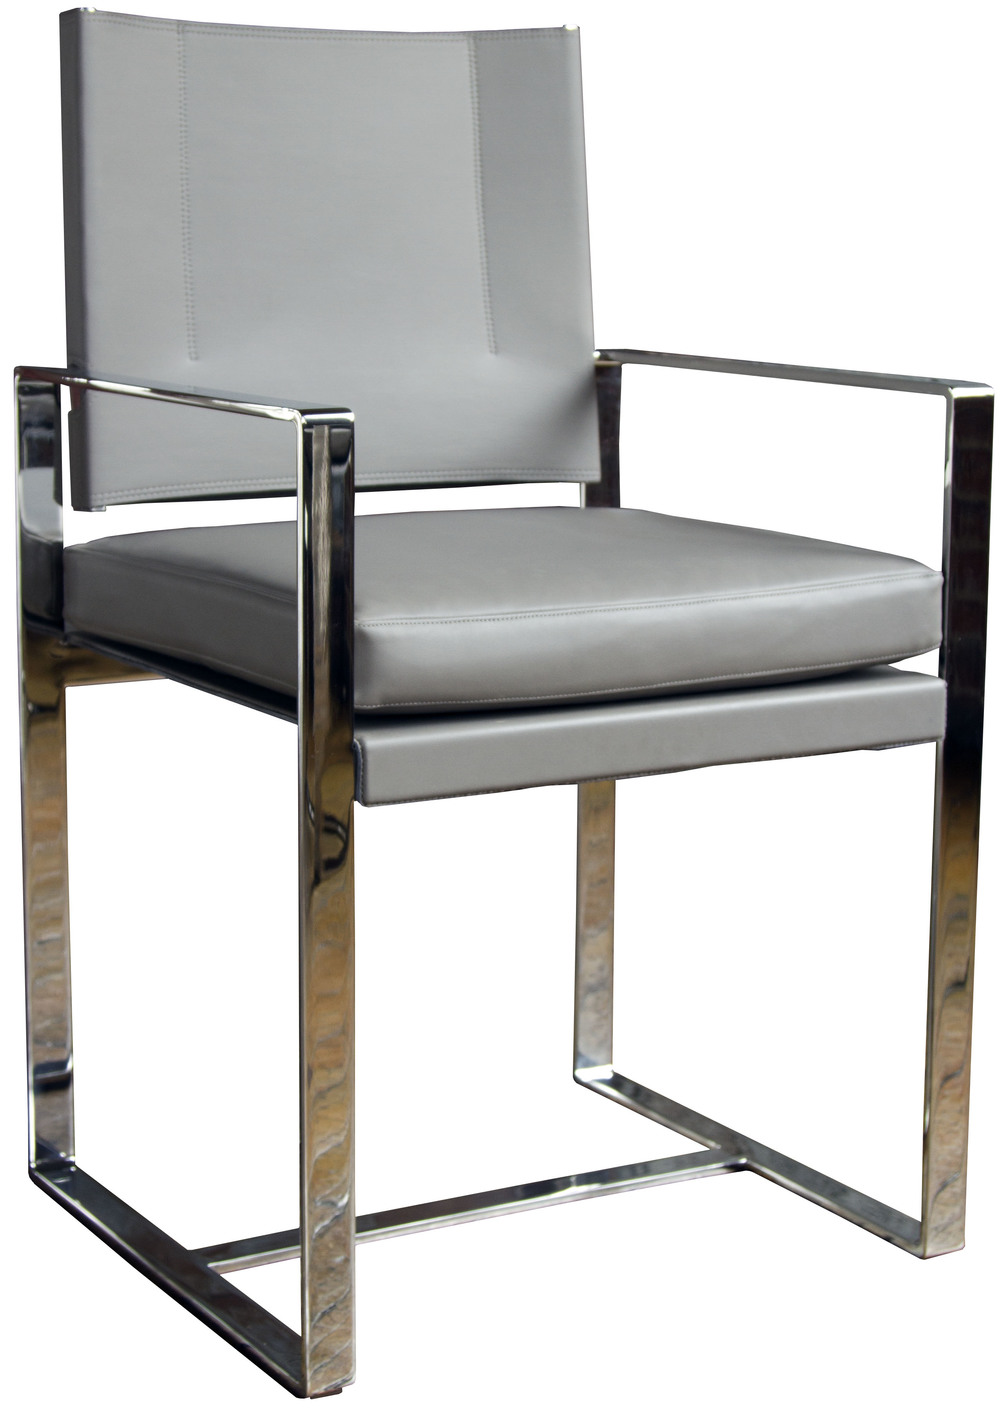 MacLaren Type 2 Dining Chair